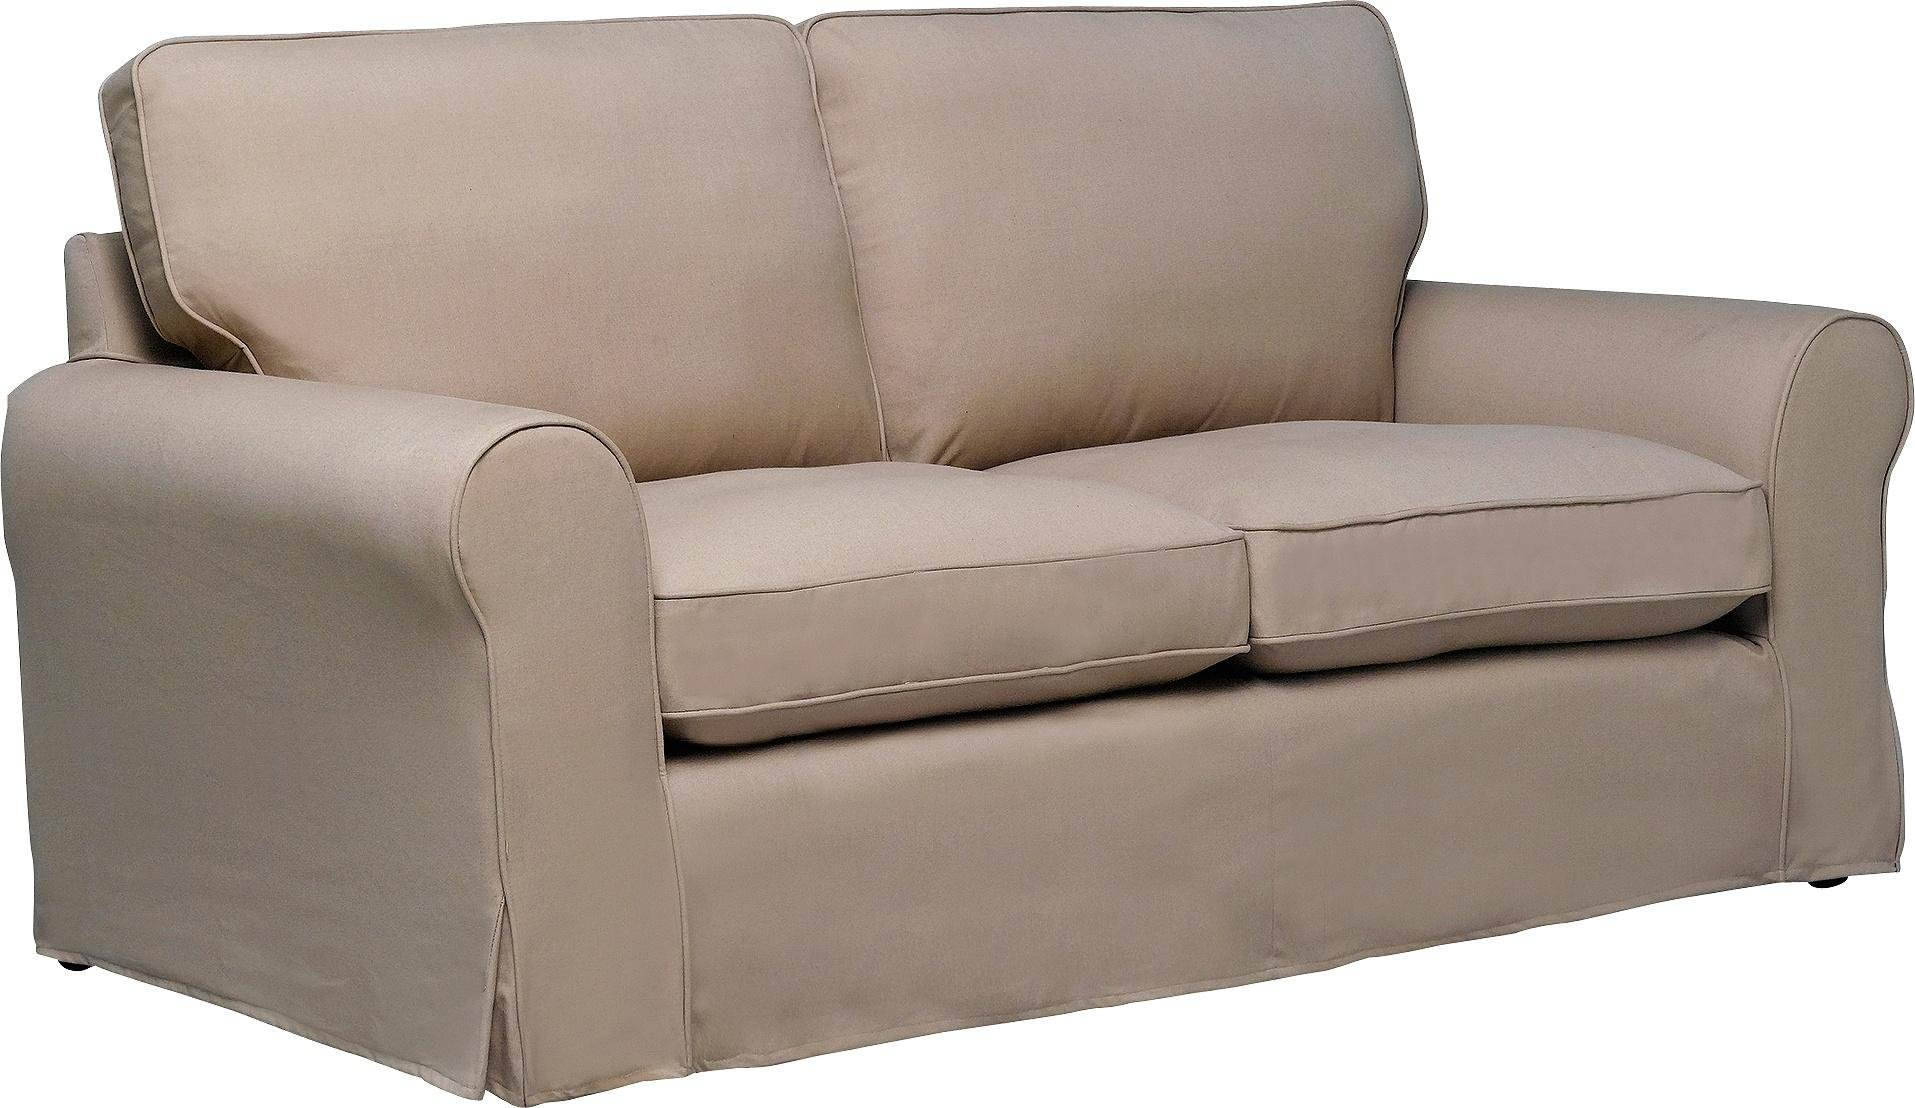 sofa protectors argos lazy boy queen size bed sale on home charlotte 3 seater fabric with loose